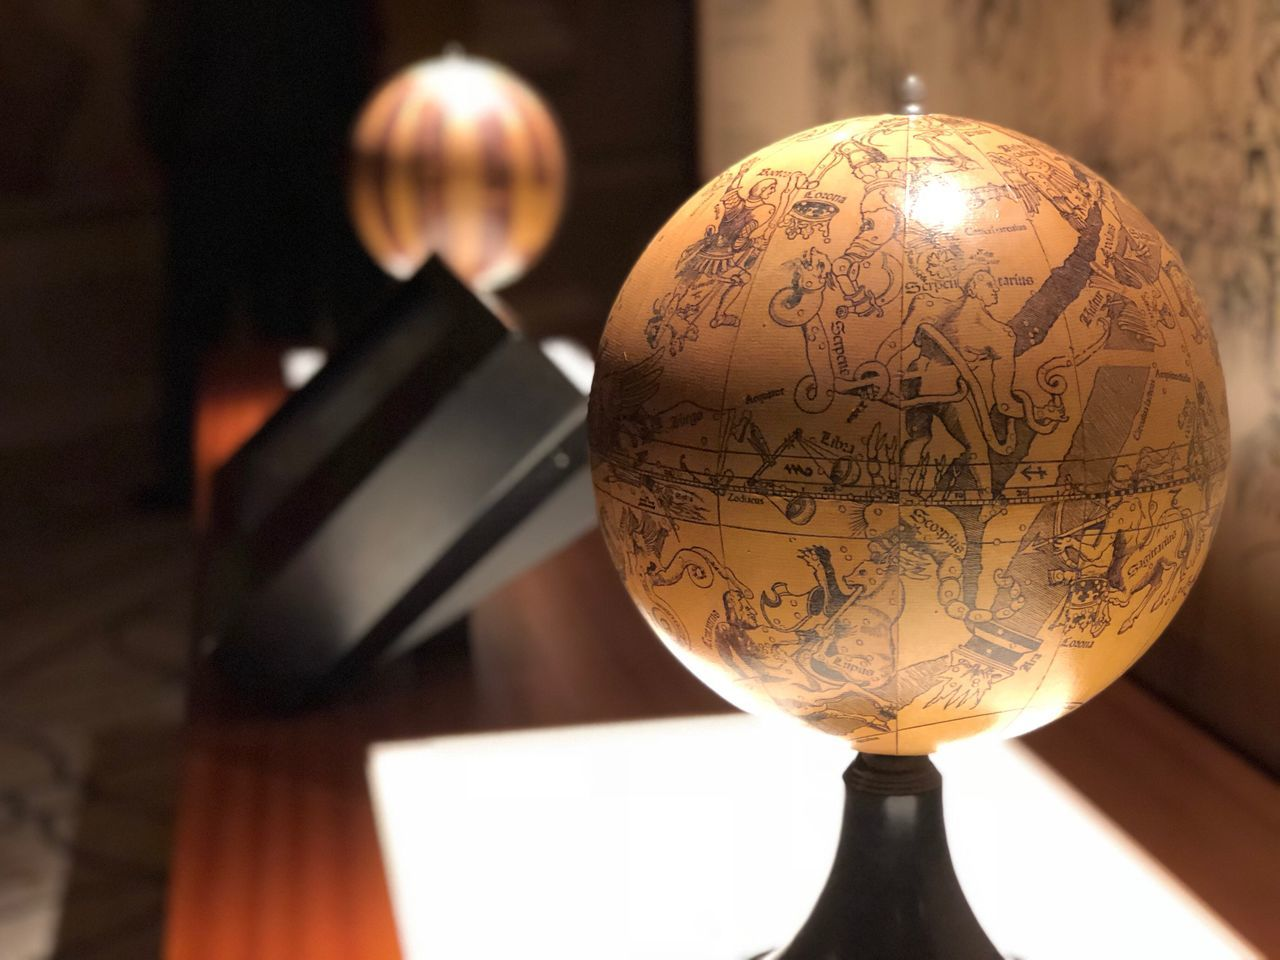 Indoors  Close-up No People Illuminated Planet Earth Day Astronomy globe earth